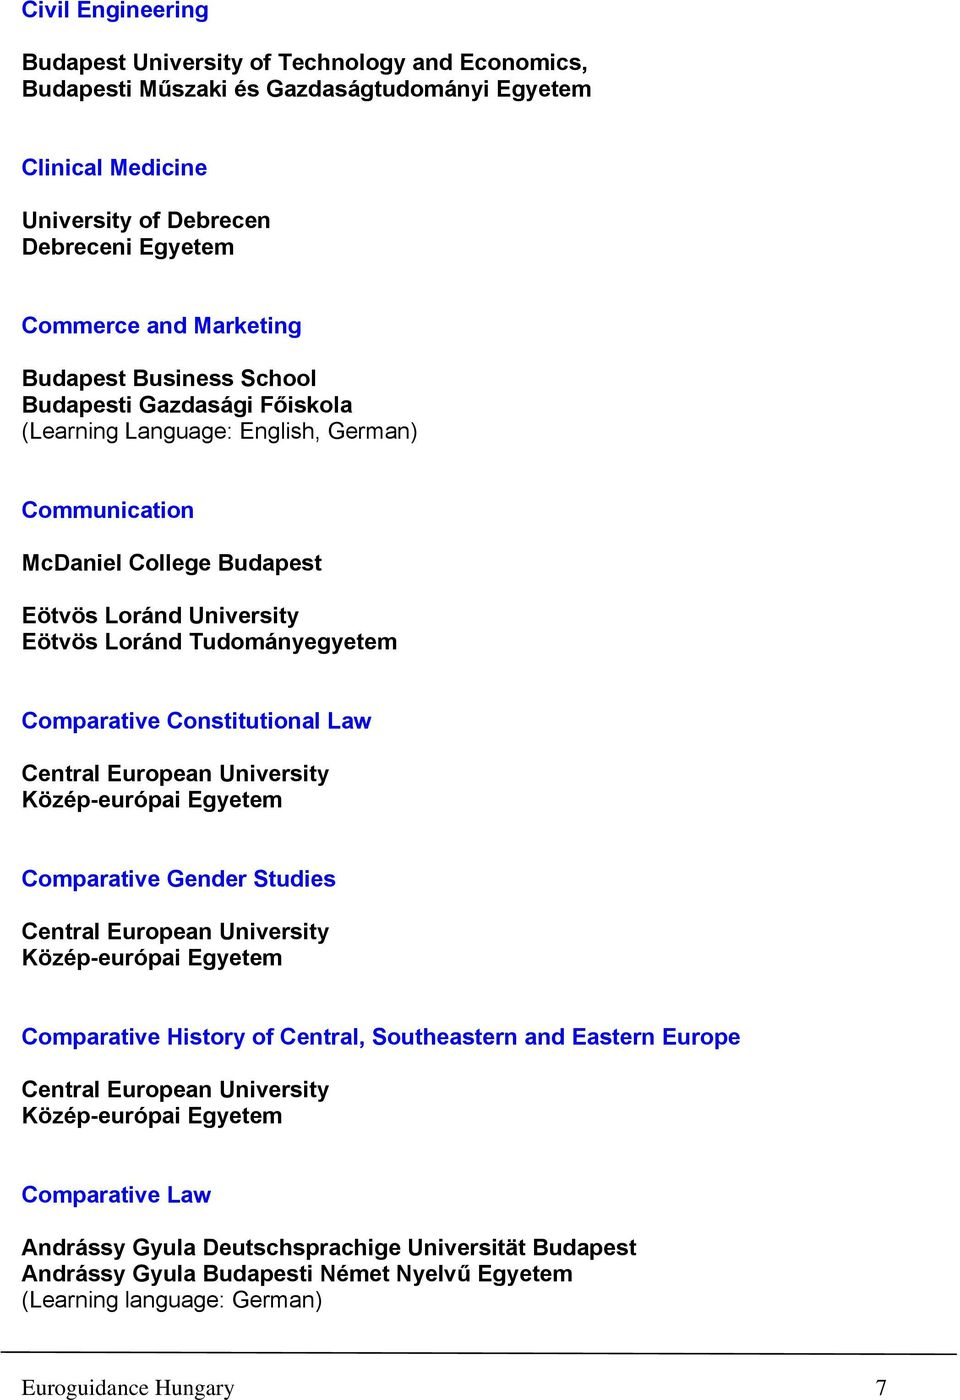 Budapest Comparative Constitutional Law Comparative Gender Studies Comparative History of Central, Southeastern and Eastern Europe Comparative